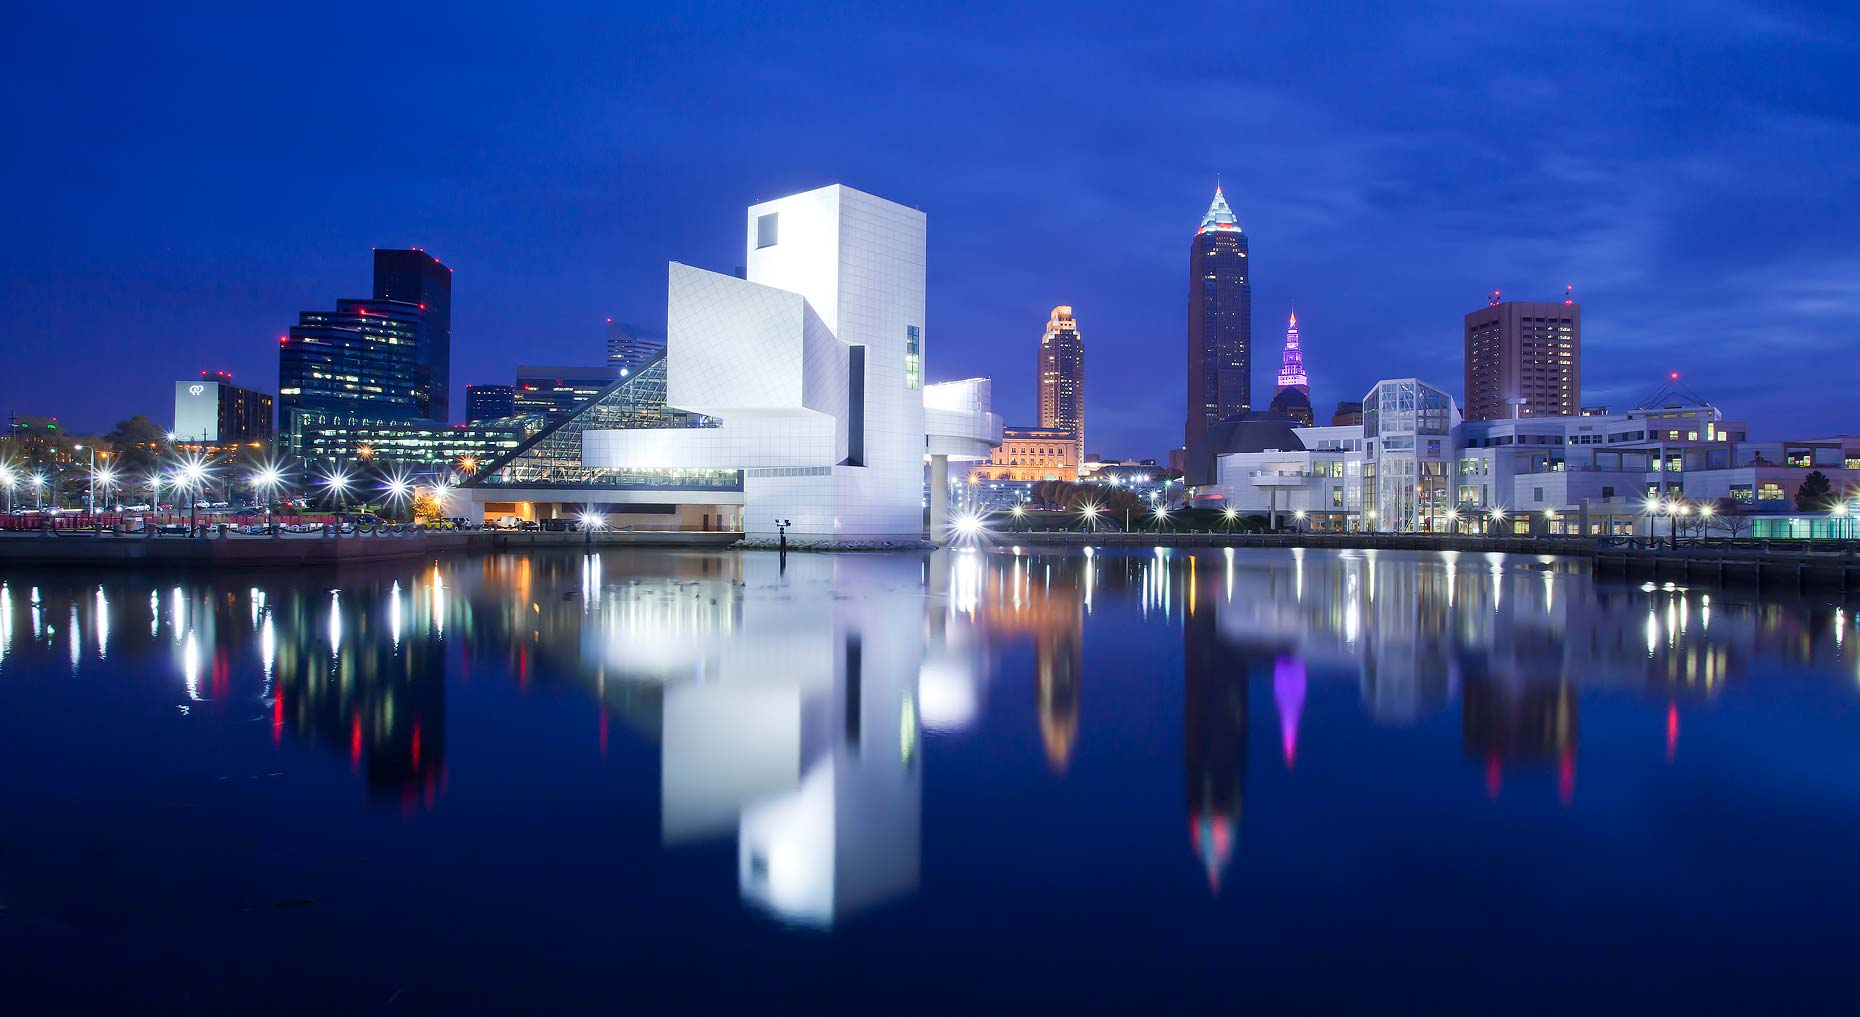 Rock_and_Roll_Hall_of_Fame-Cleveland_skyline.jpg